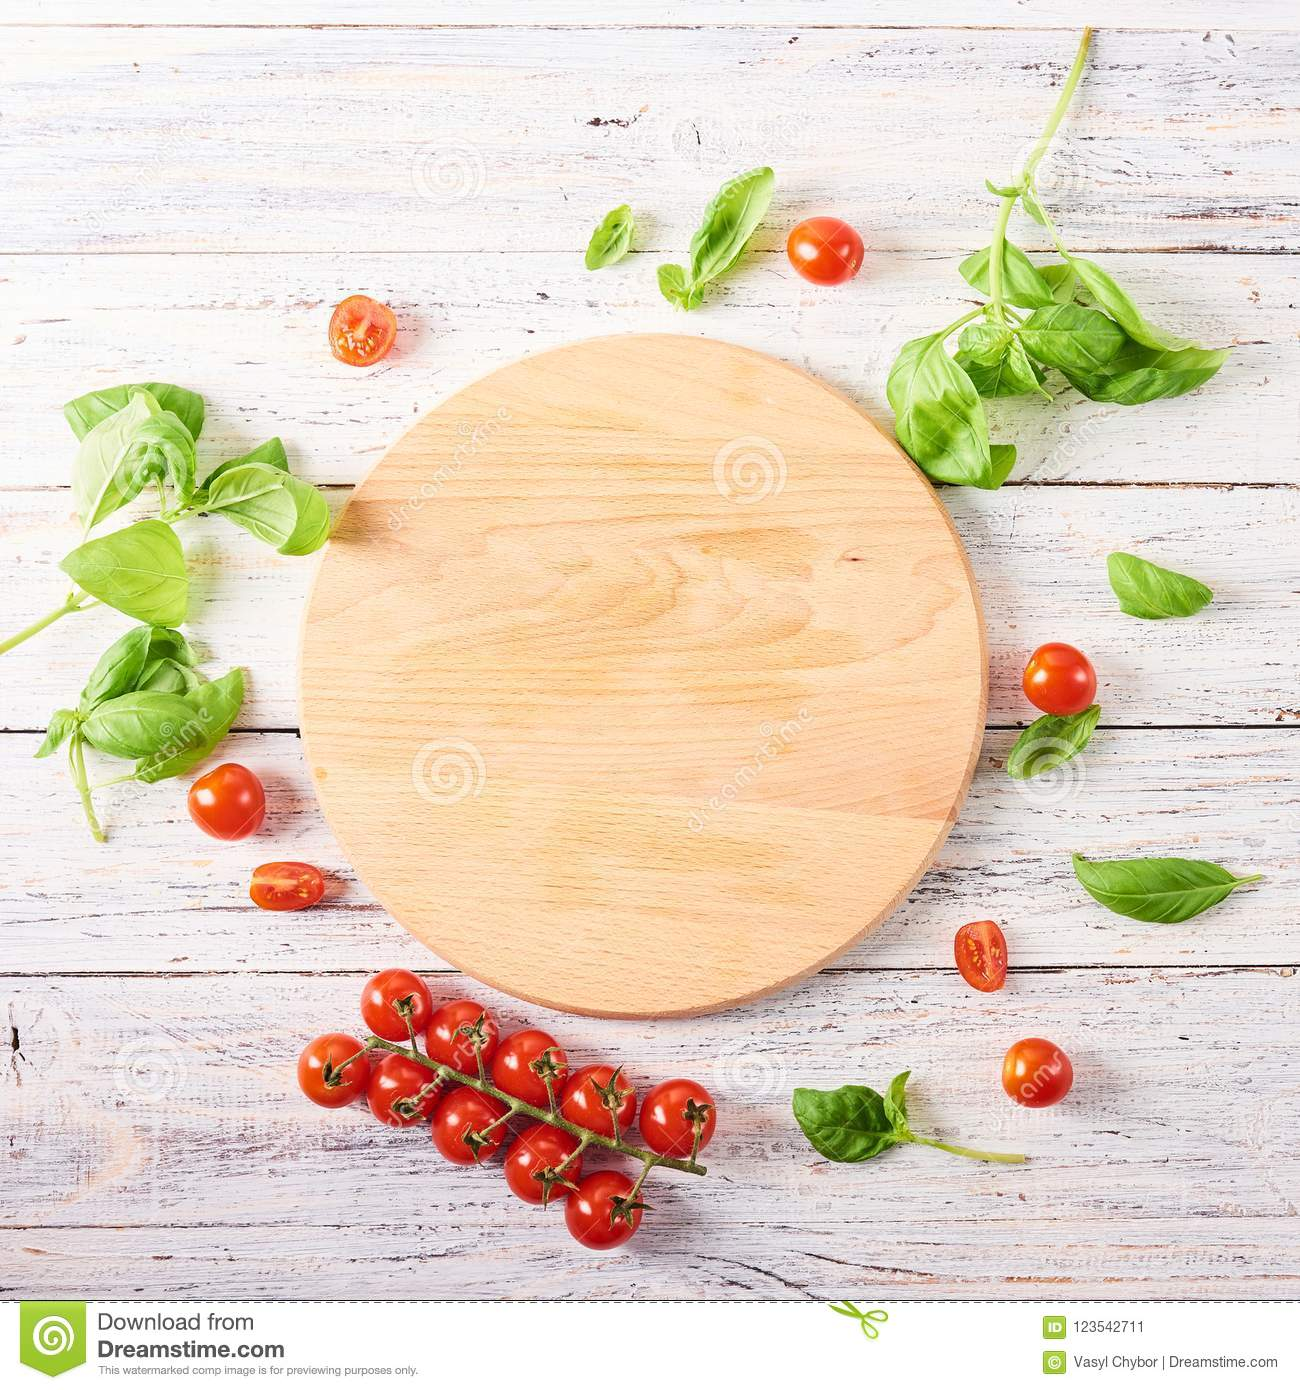 Empty wooden cutting board with tomatoes and basil